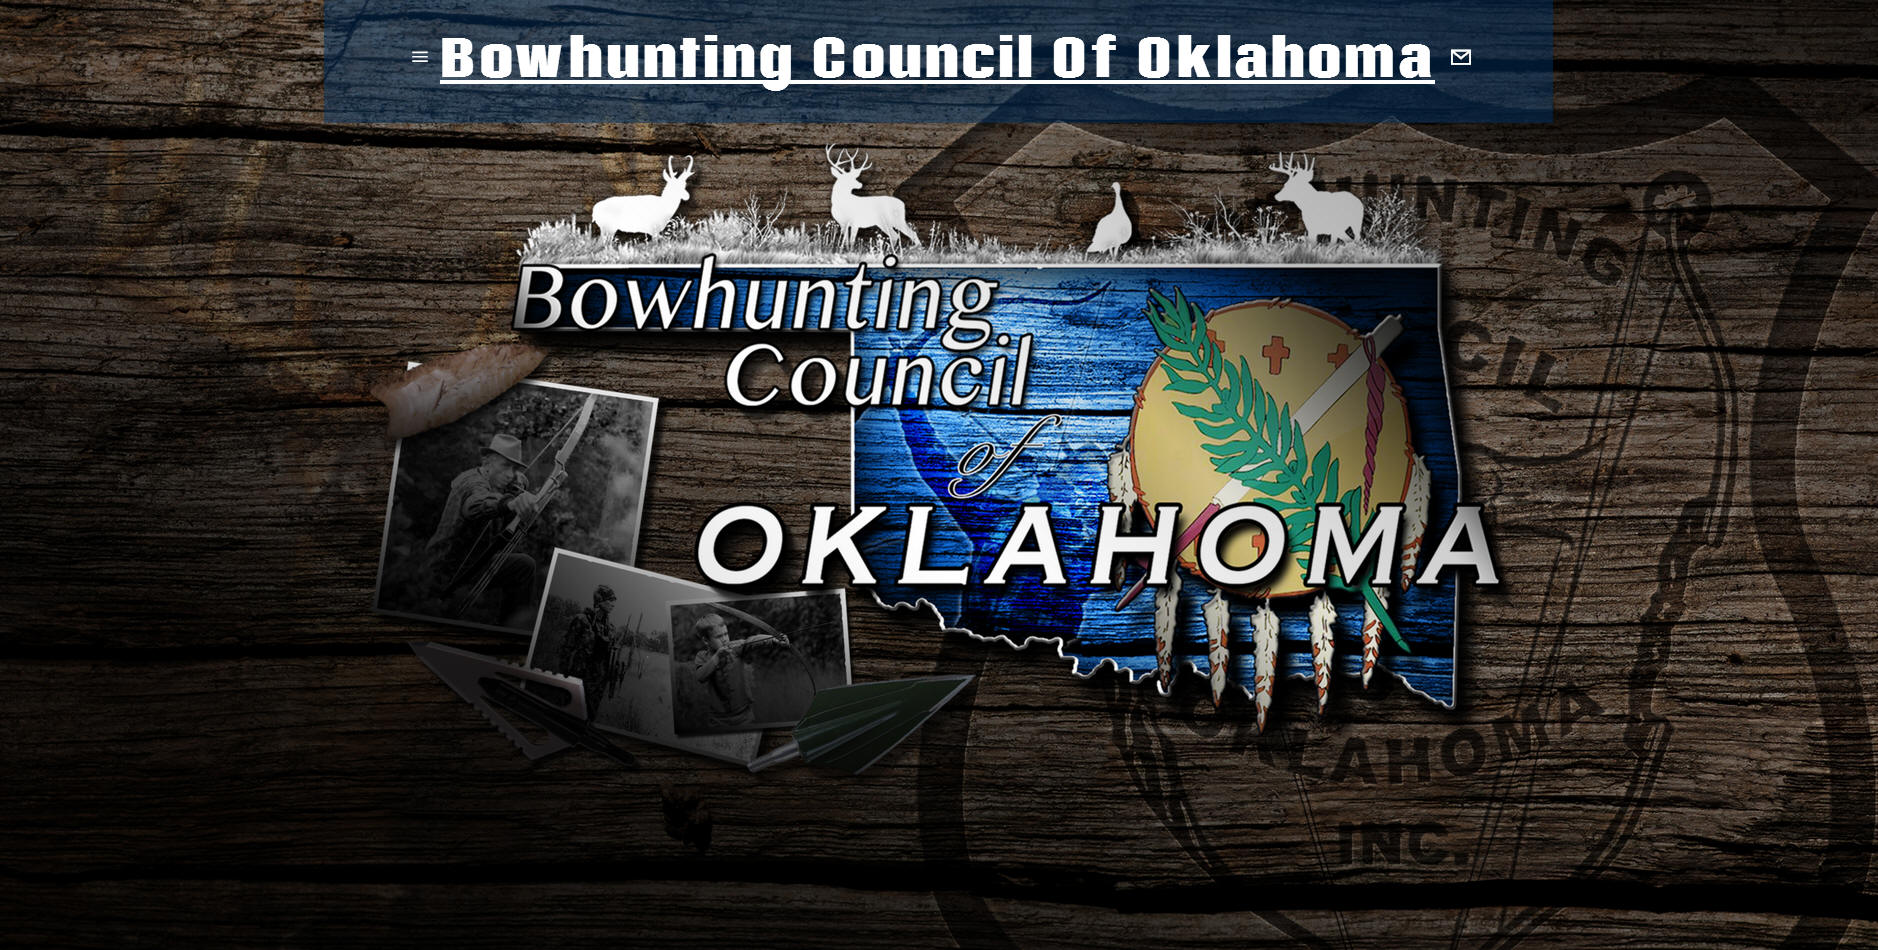 BowHuntingCouncil